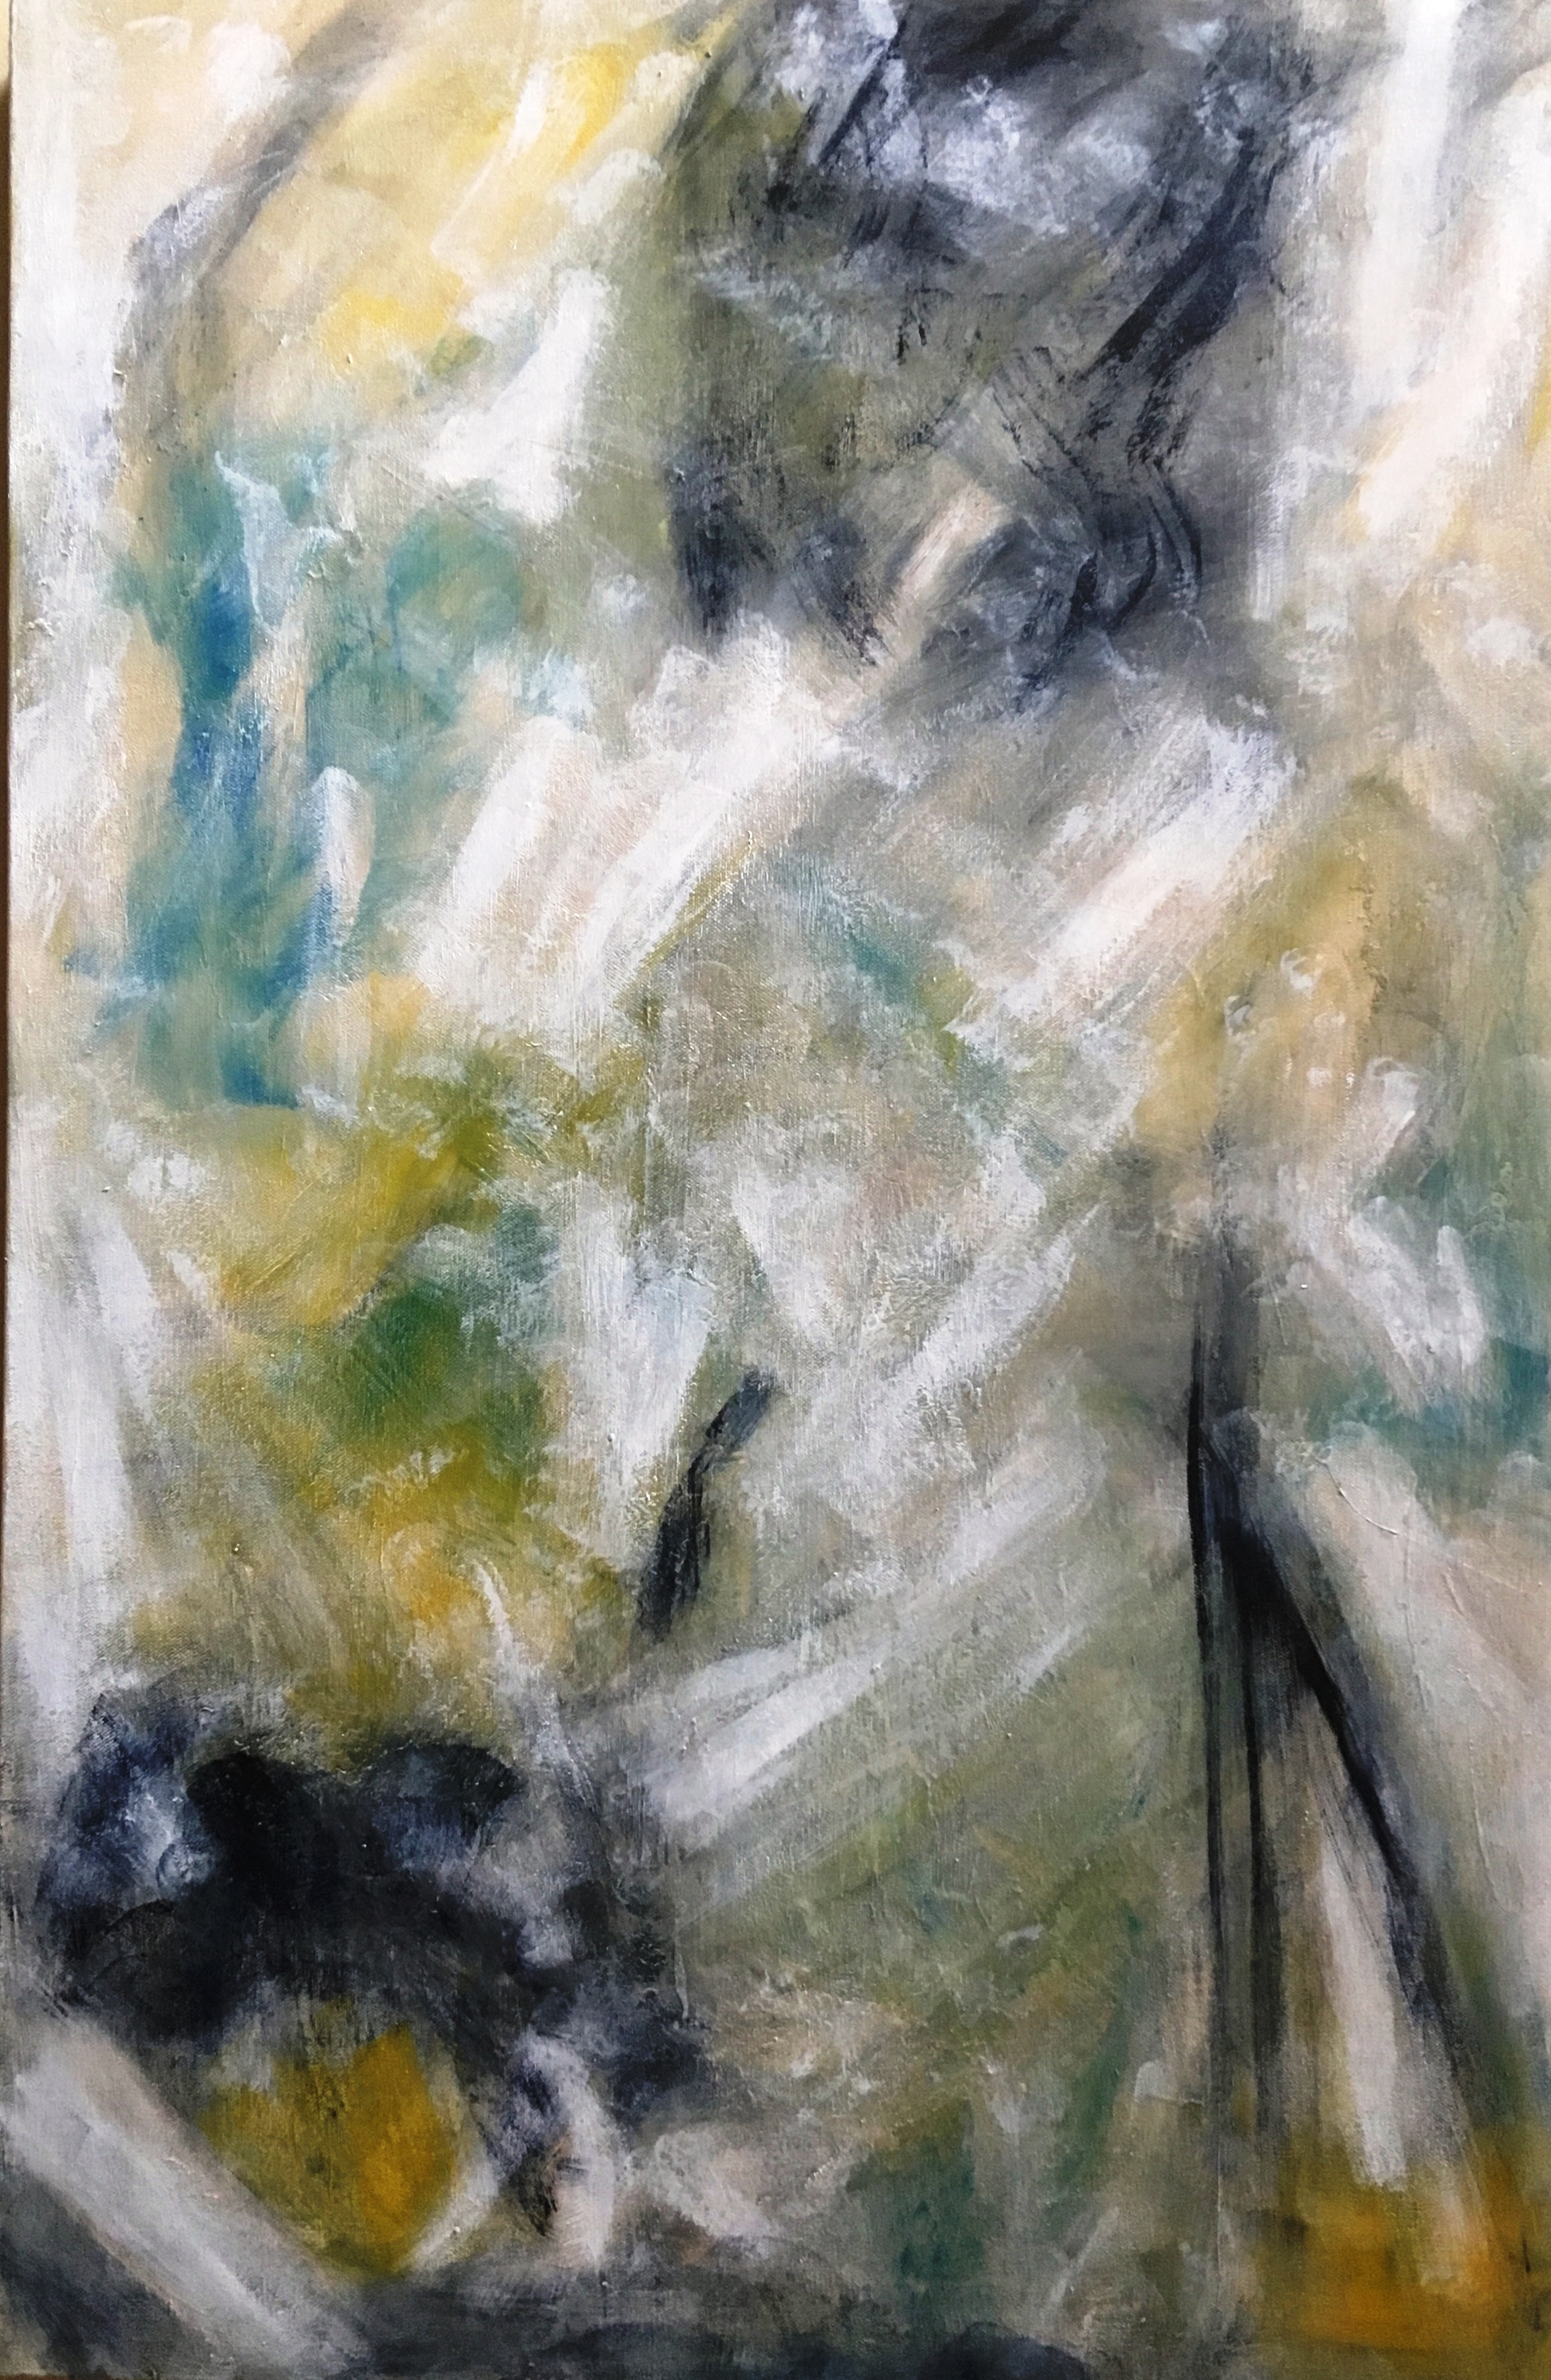 June Colors artwork by Susan Gray Decker - art listed for sale on Artplode